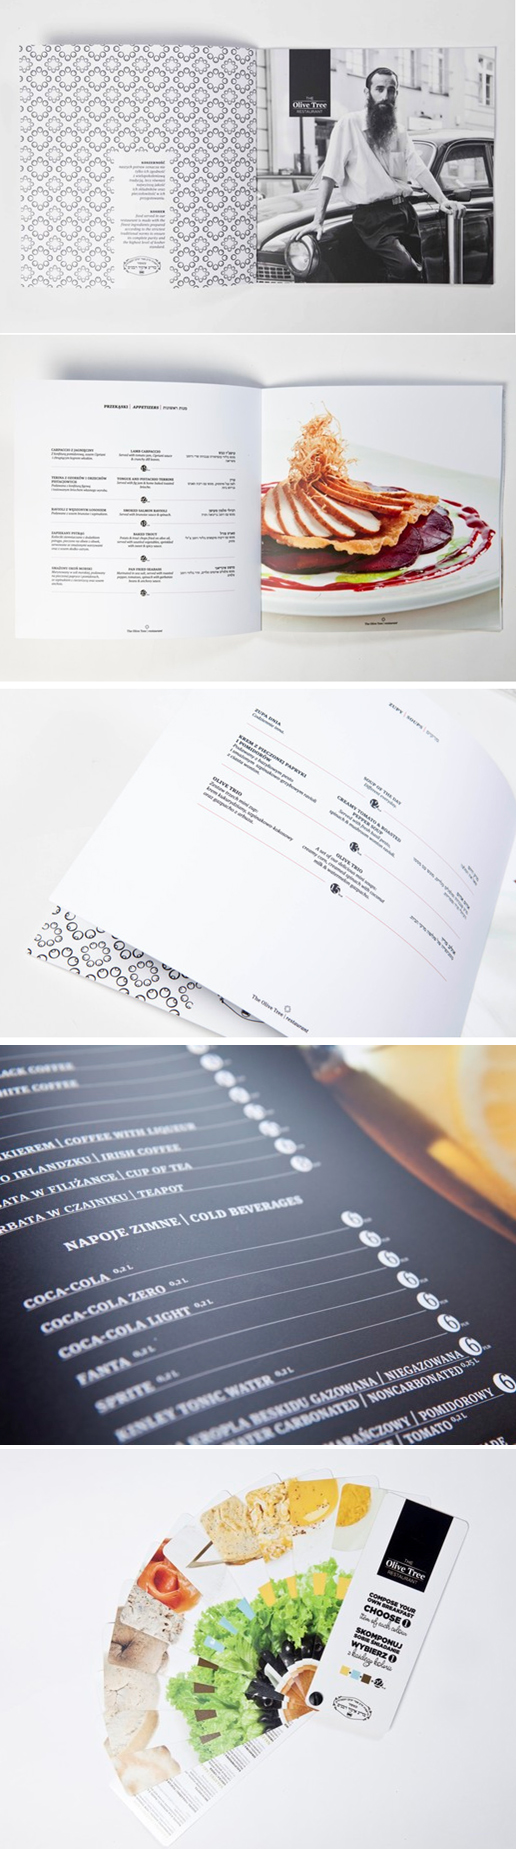 The_olive_tree_menu